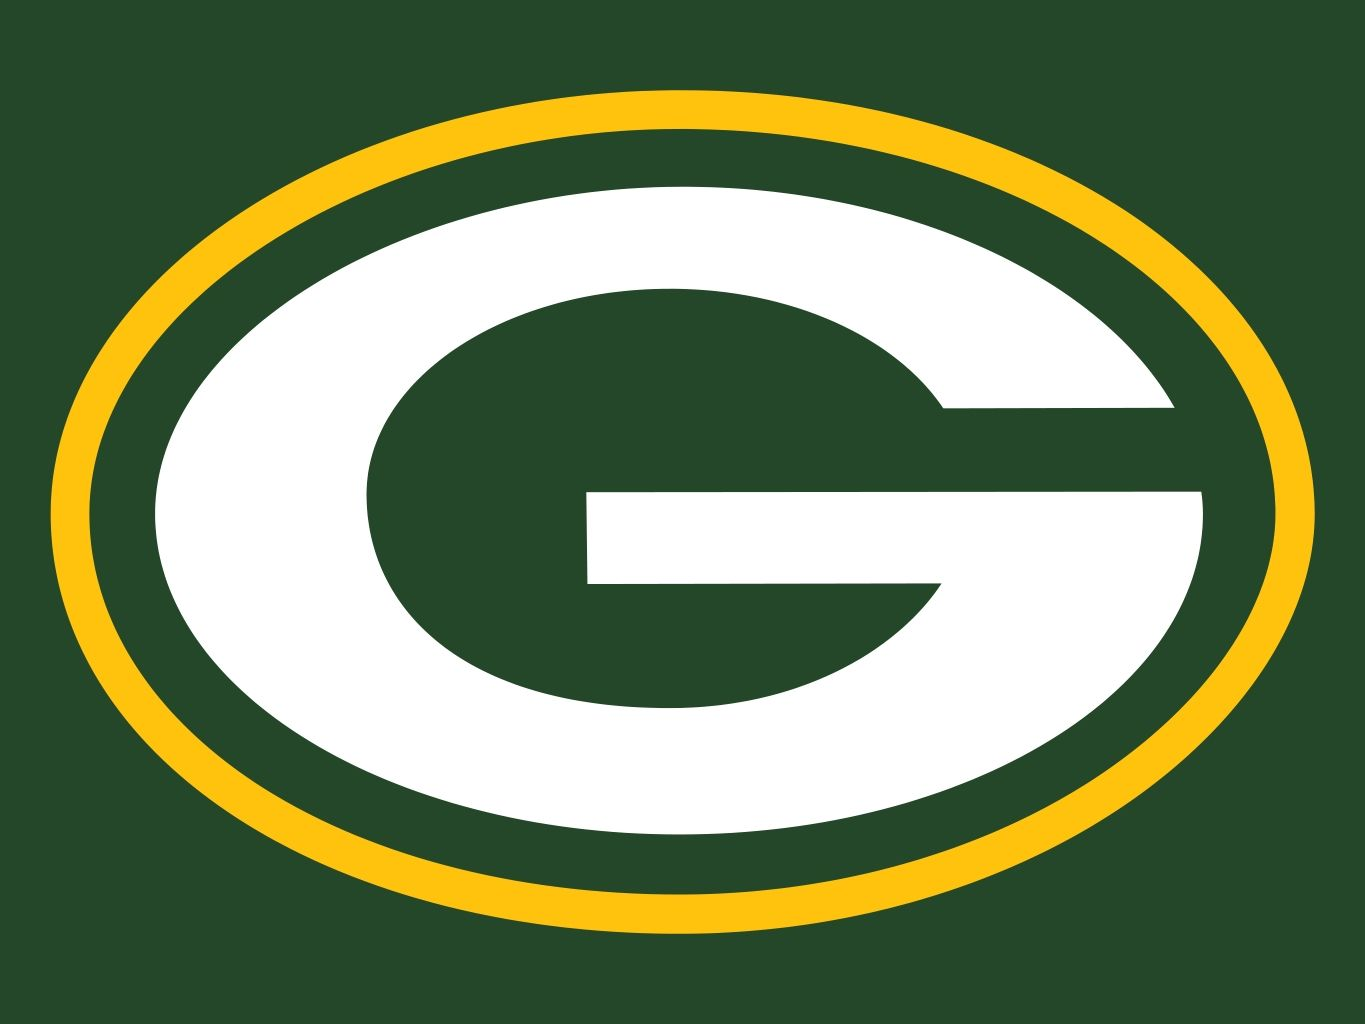 Images Of The Green Bay Packards Football Logos Green Bay Packers Green Bay Packers Logo Green Bay Packers Green Bay Packers Football